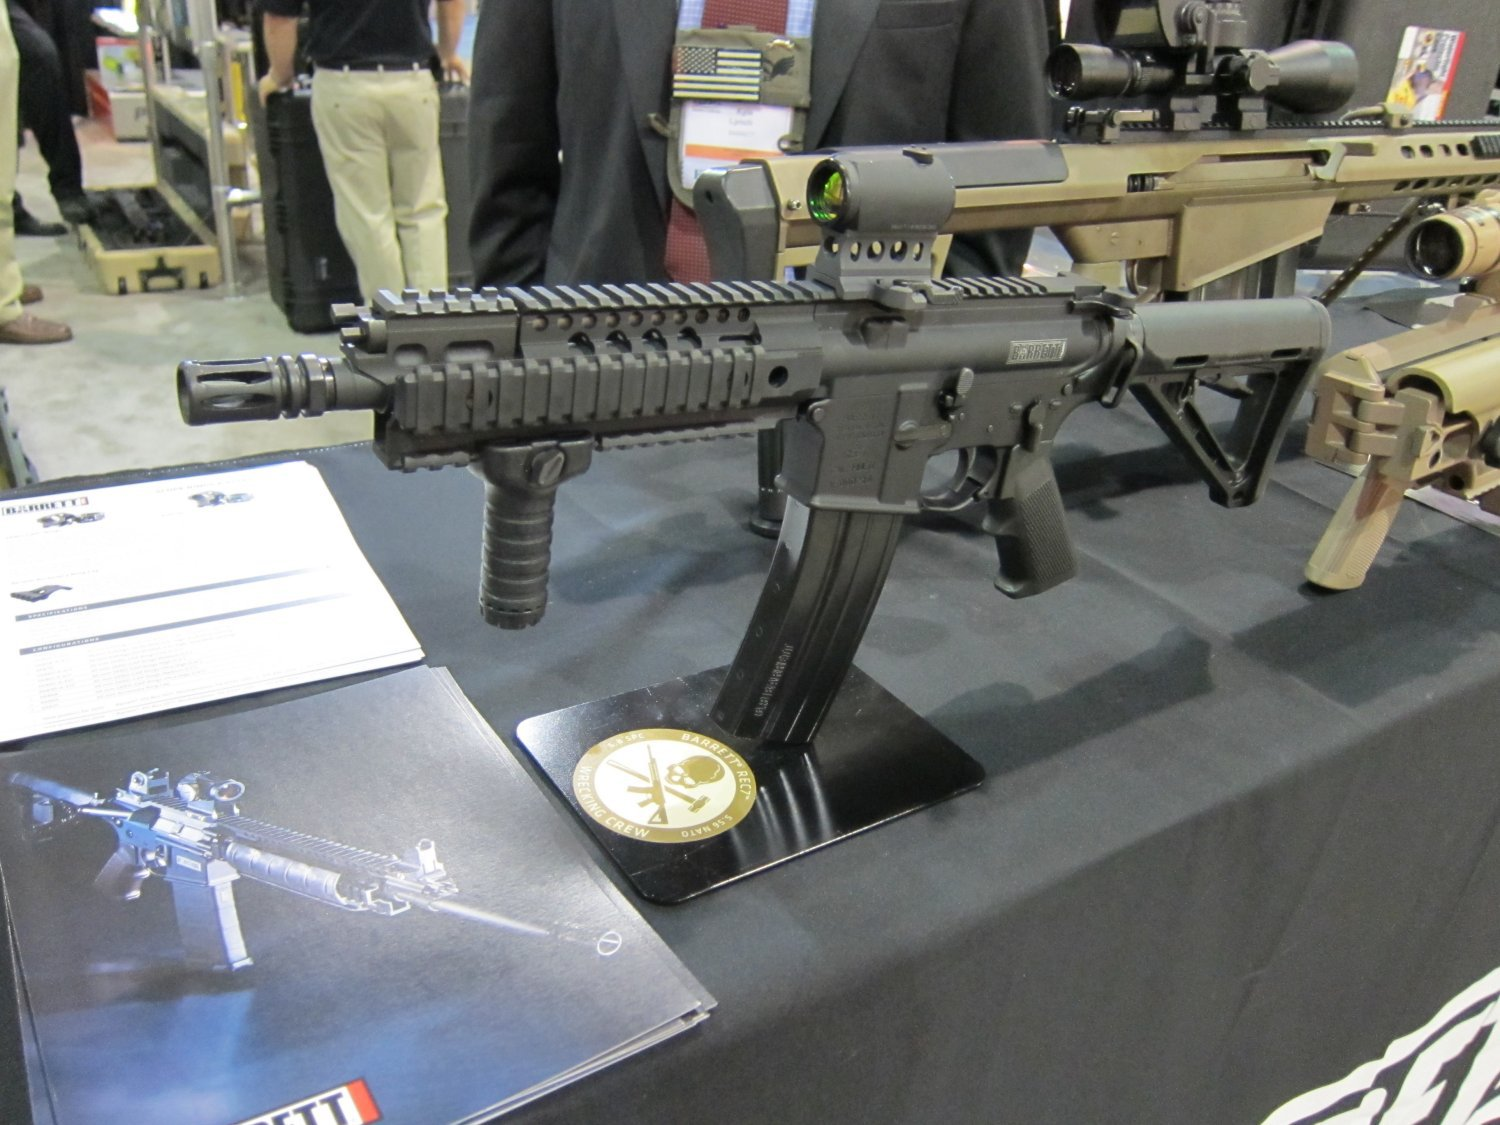 Barrett REC7 5.56mm AR SBR 22 Barrett REC7 5.56 8 Piston AR PDW Displayed at SOFIC 2010 (Photos!): 5.56mm NATO Piston Driven Tactical AR Carbine/SBR for Military Special Operations Forces (SOF)